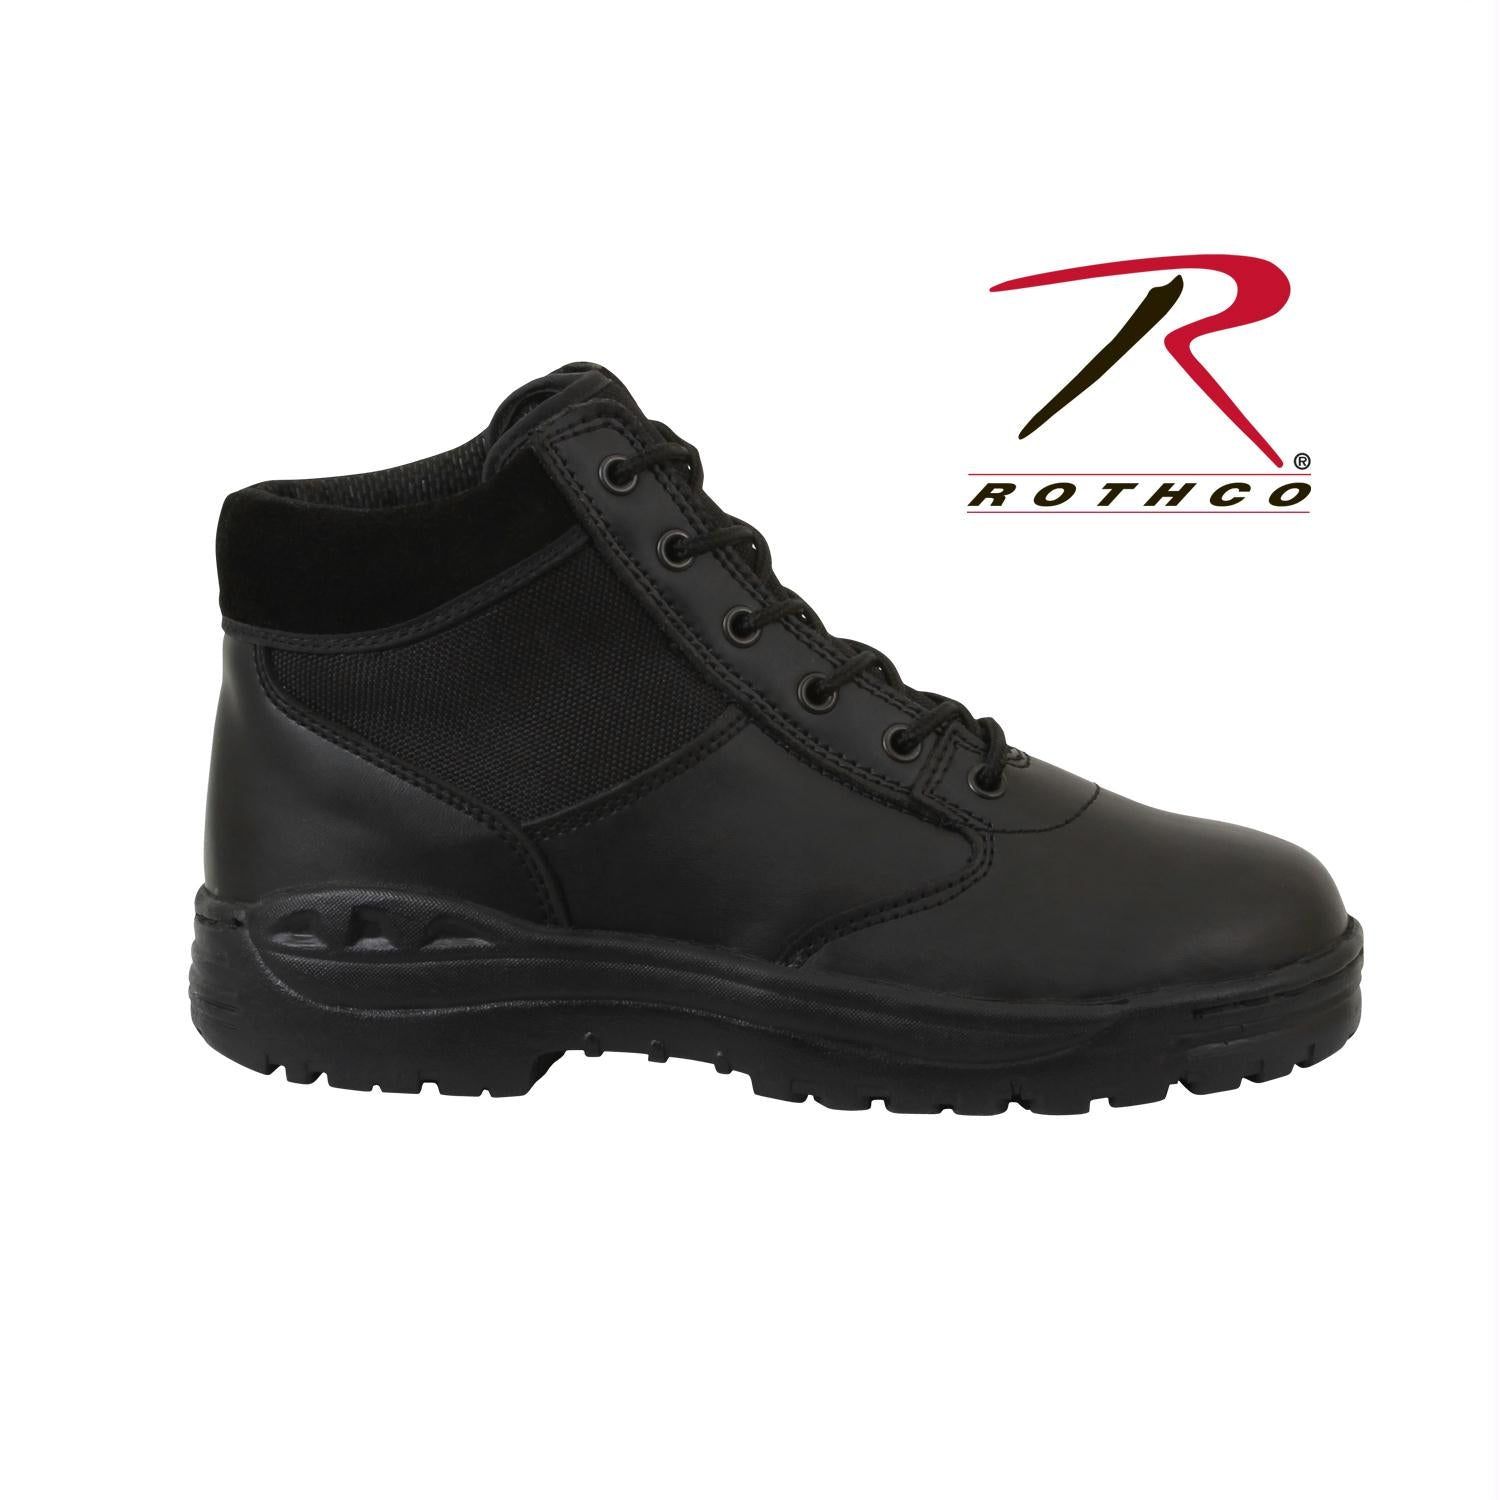 Rothco Forced Entry Security Boot / 6'' - 4